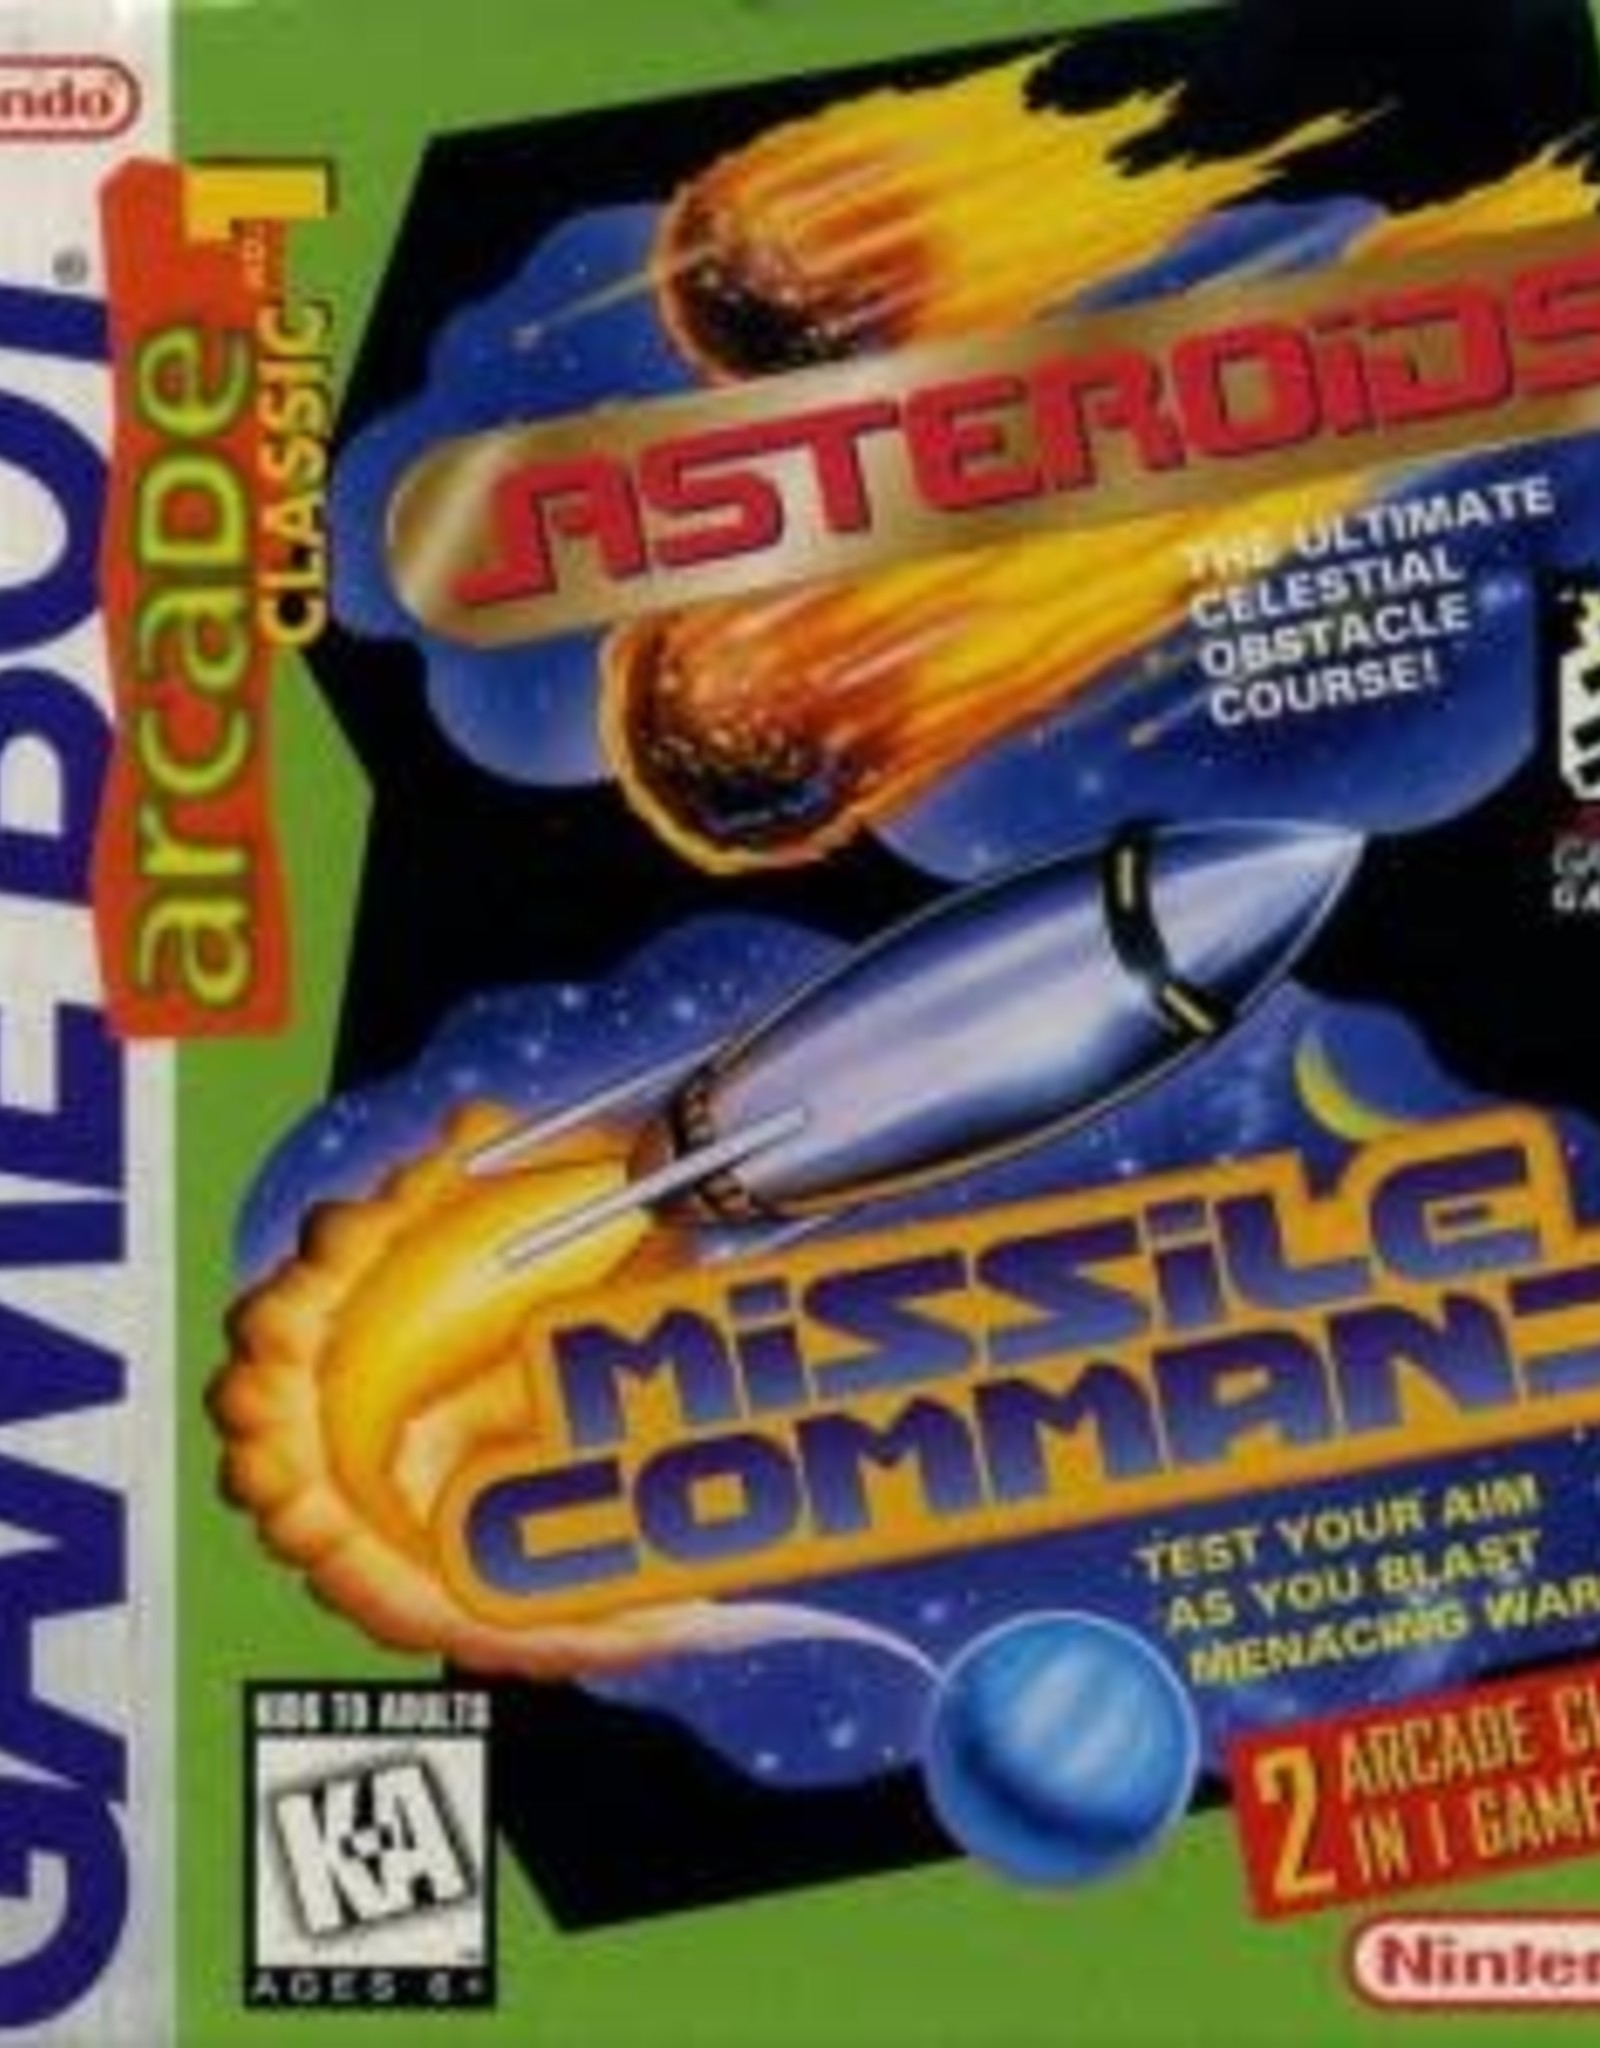 GameBoy Arcade Classic: Asteroids and Missile Command (Cart Only)